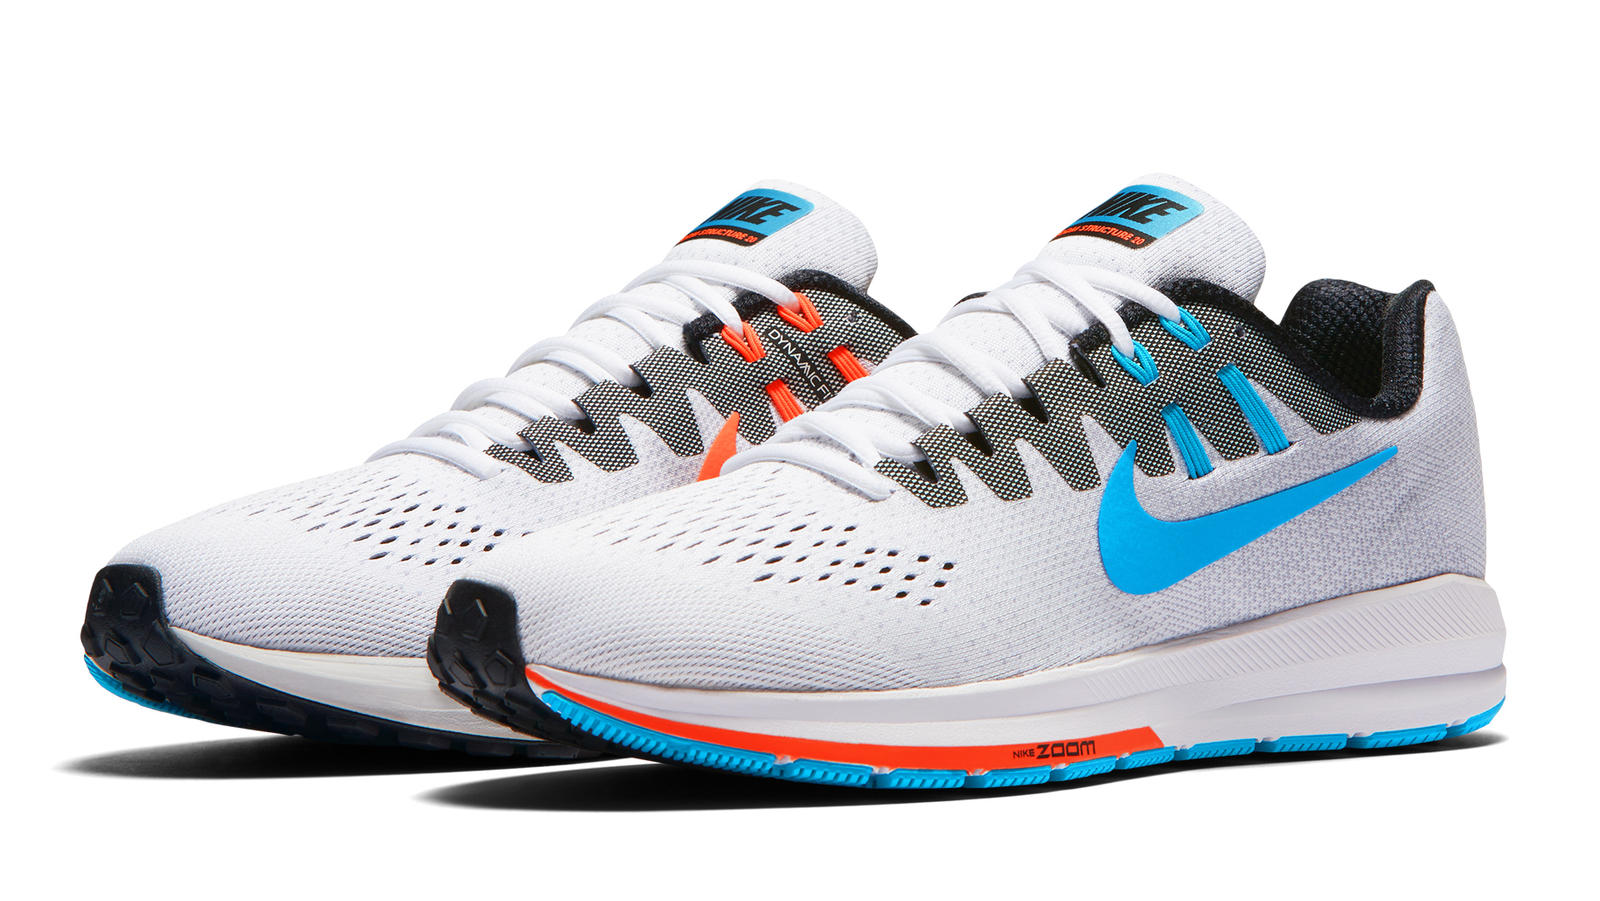 The new Nike Air Zoom Structure 20, in its anniversary colorway